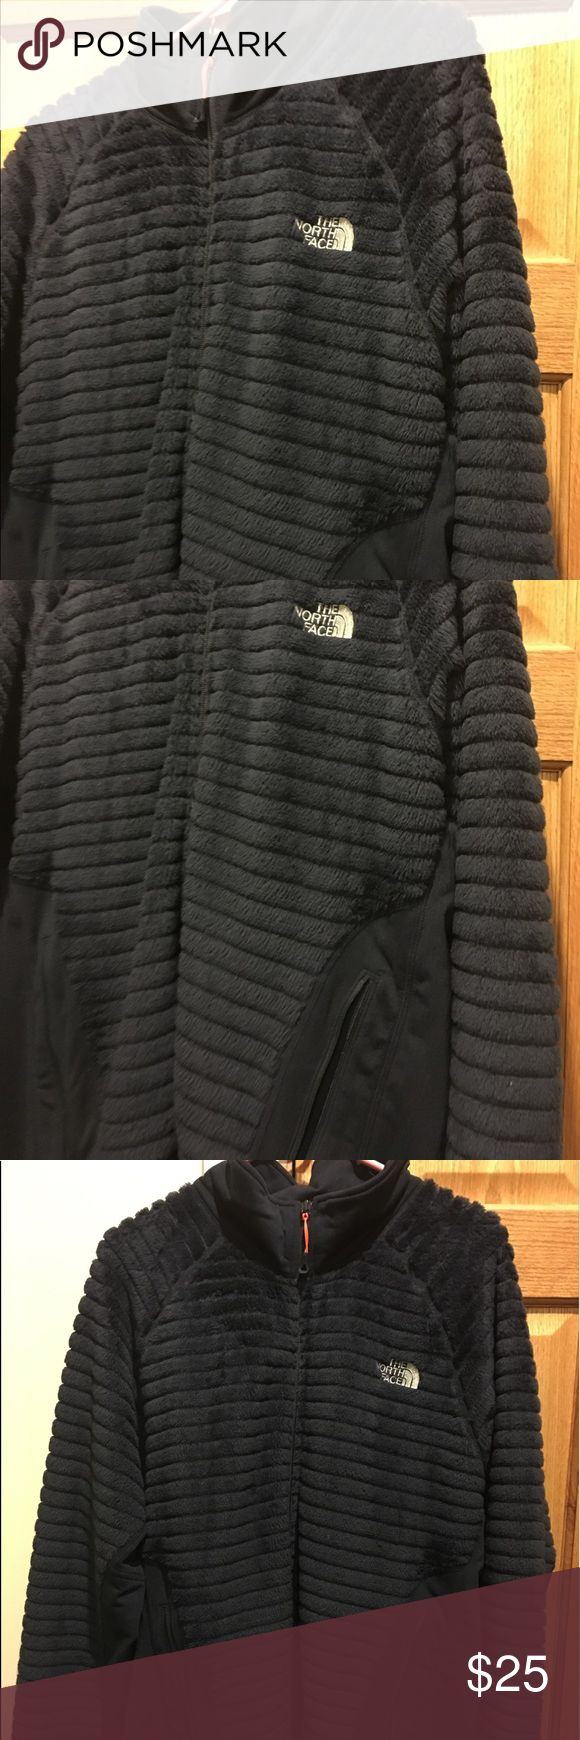 Blue and orange zippered north face xxl fleece Wore it 1 x  smoke free North Face Coat size xxl men's jacket The North Face Jackets & Coats Lightweight & Shirt Jackets